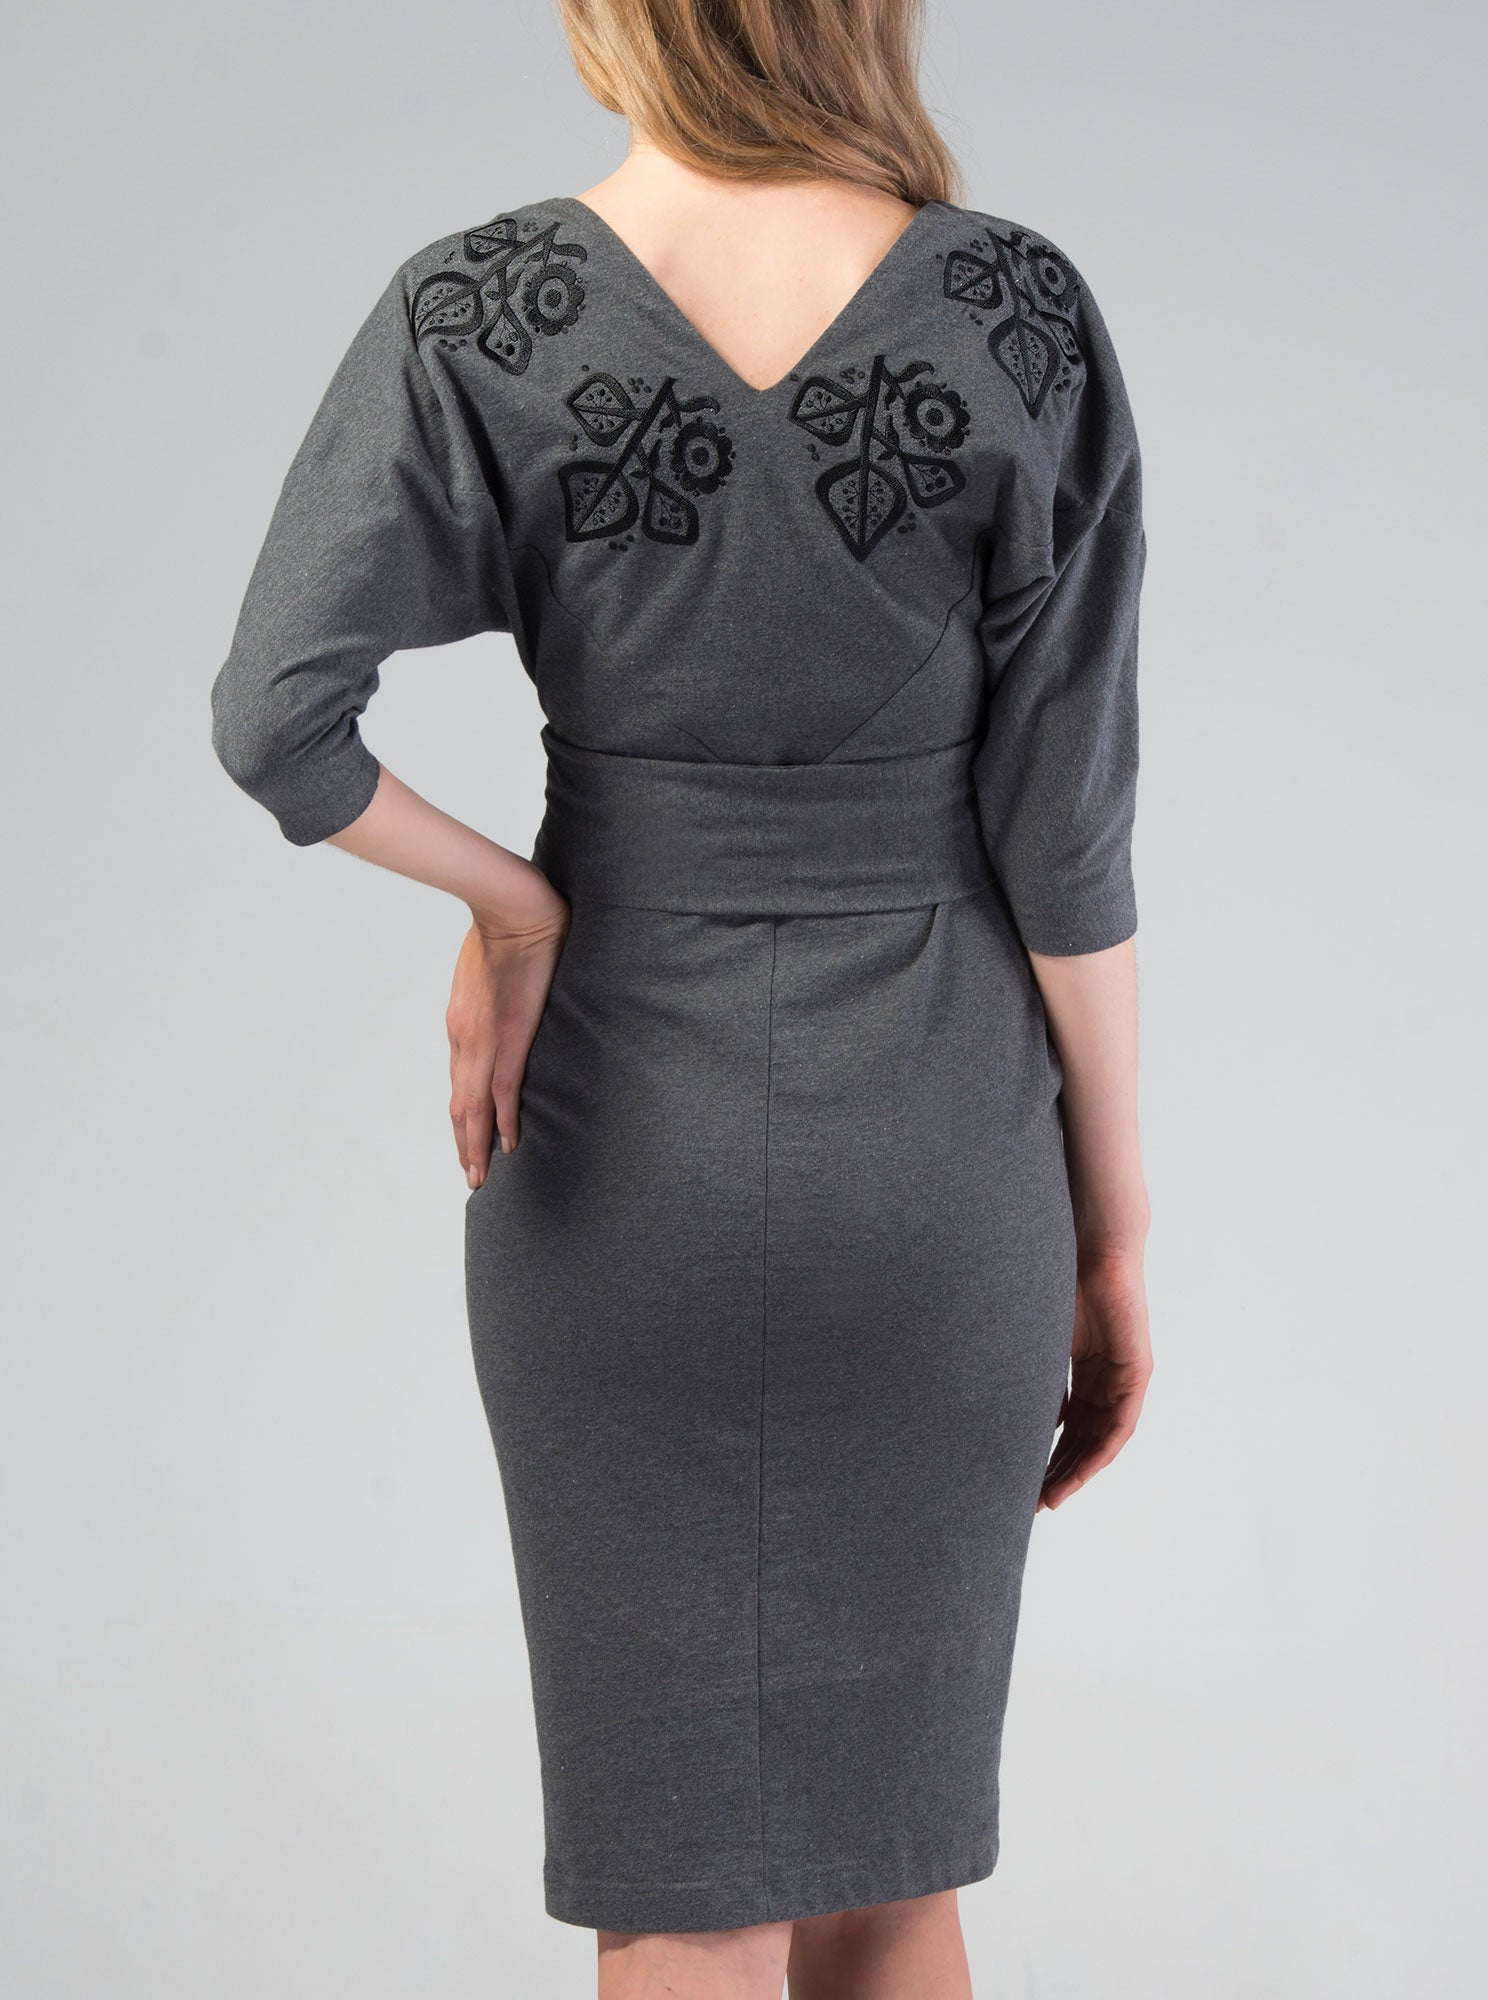 MERIKE Organic Cotton Embroidered Grey Dress